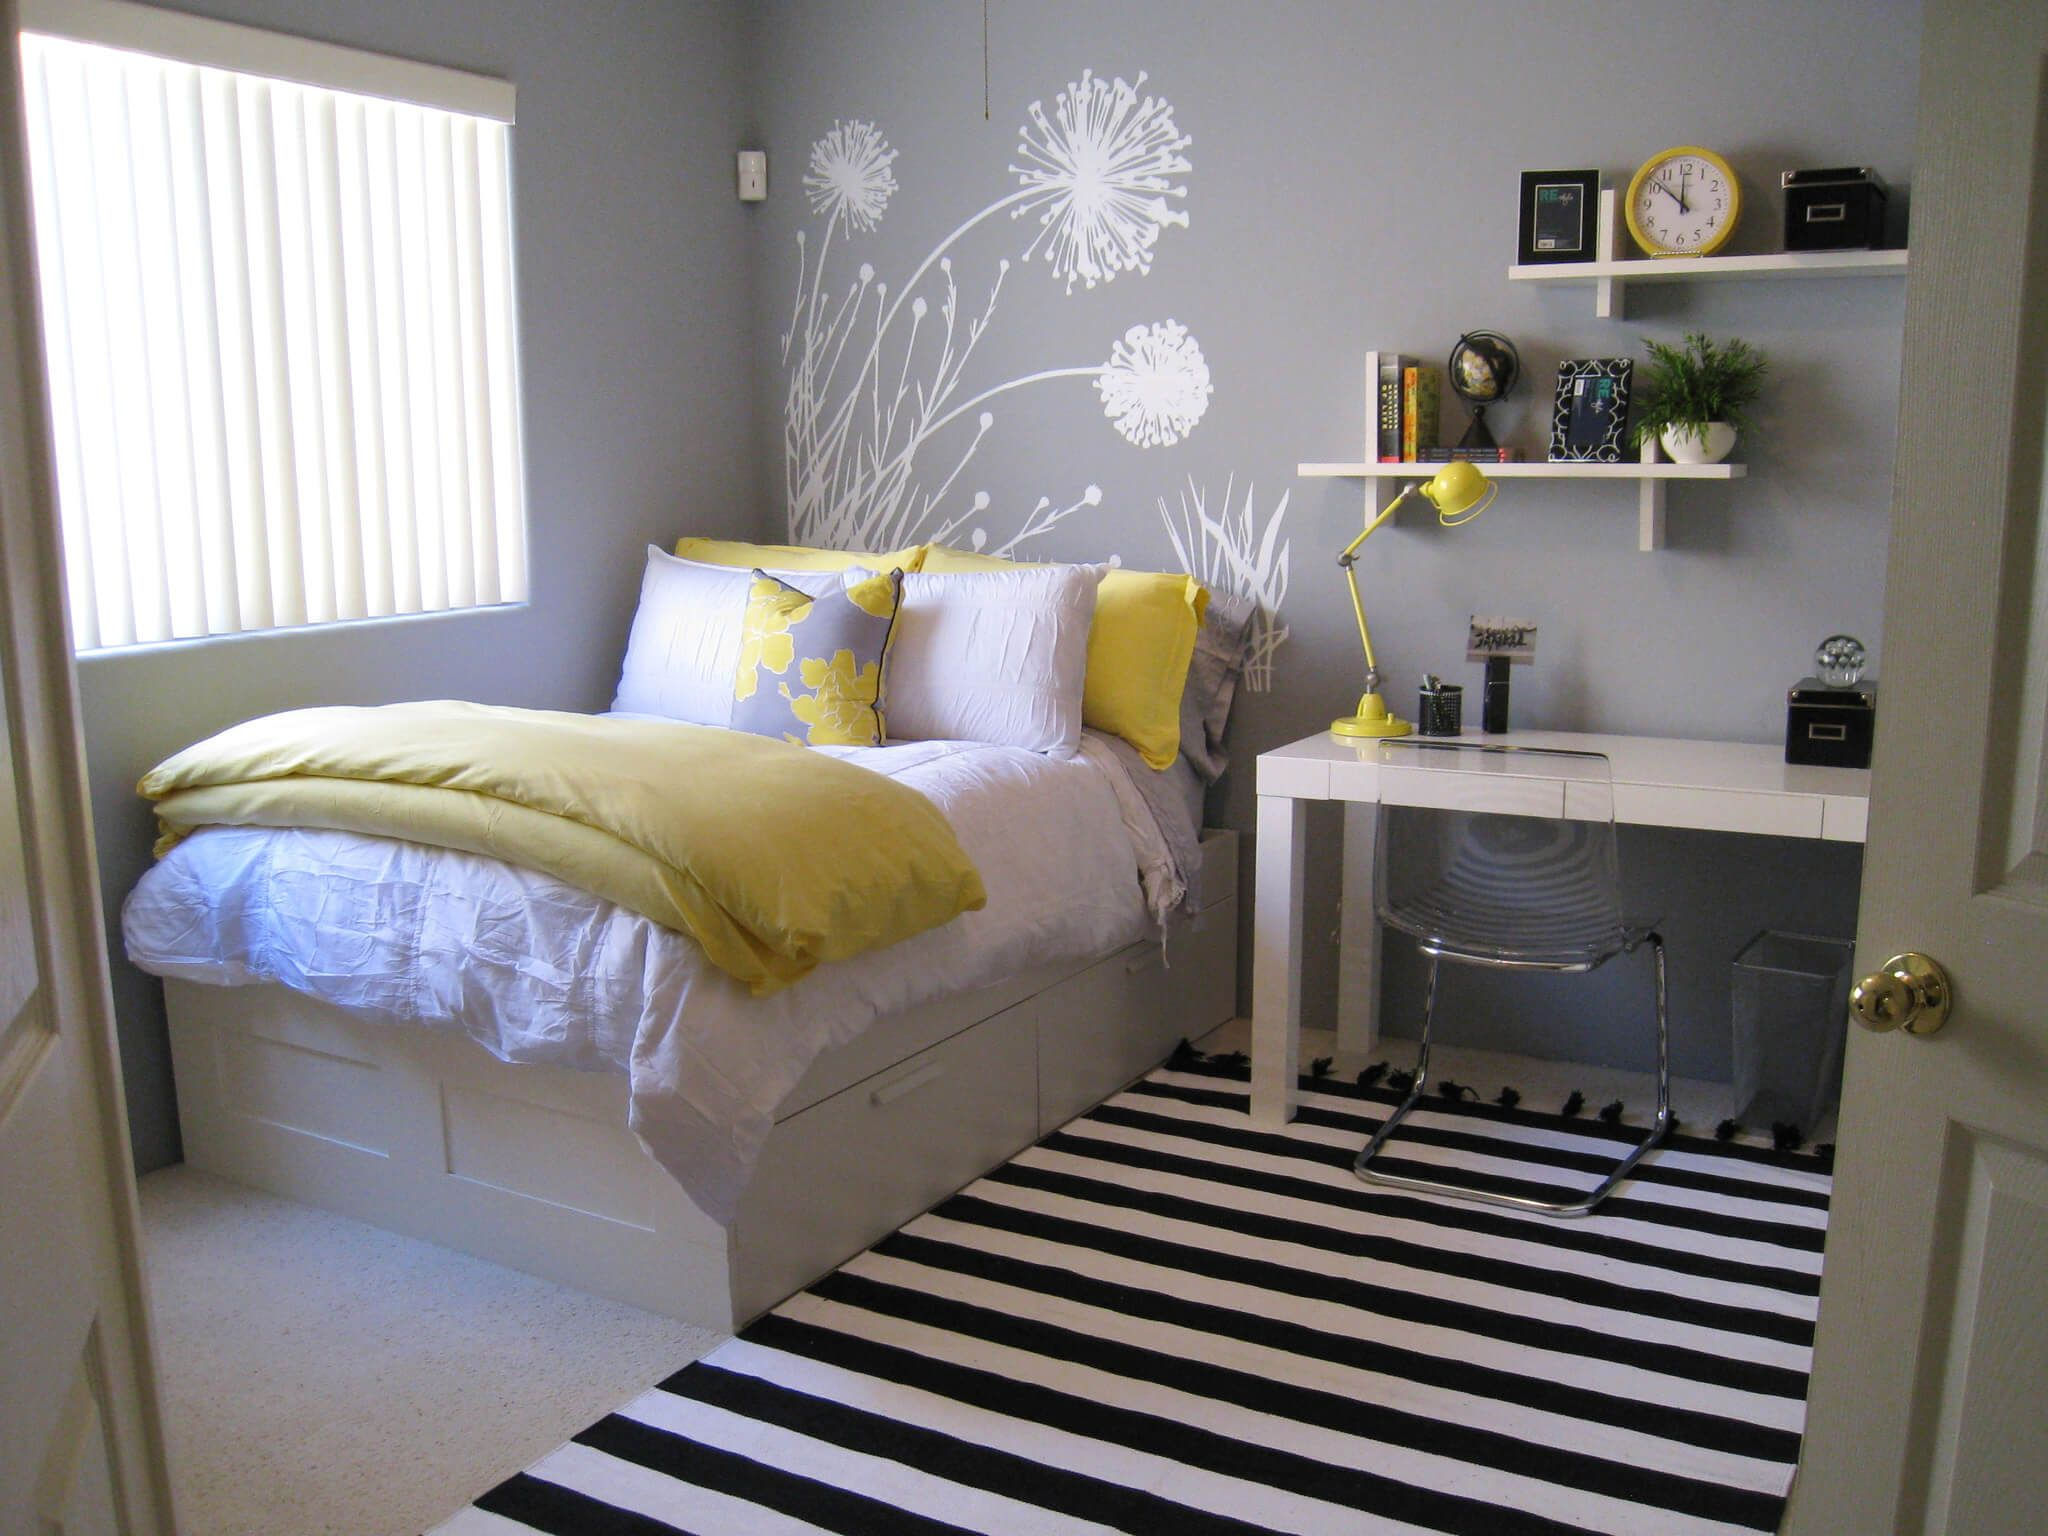 Pin on Domestic Tips and Ideas